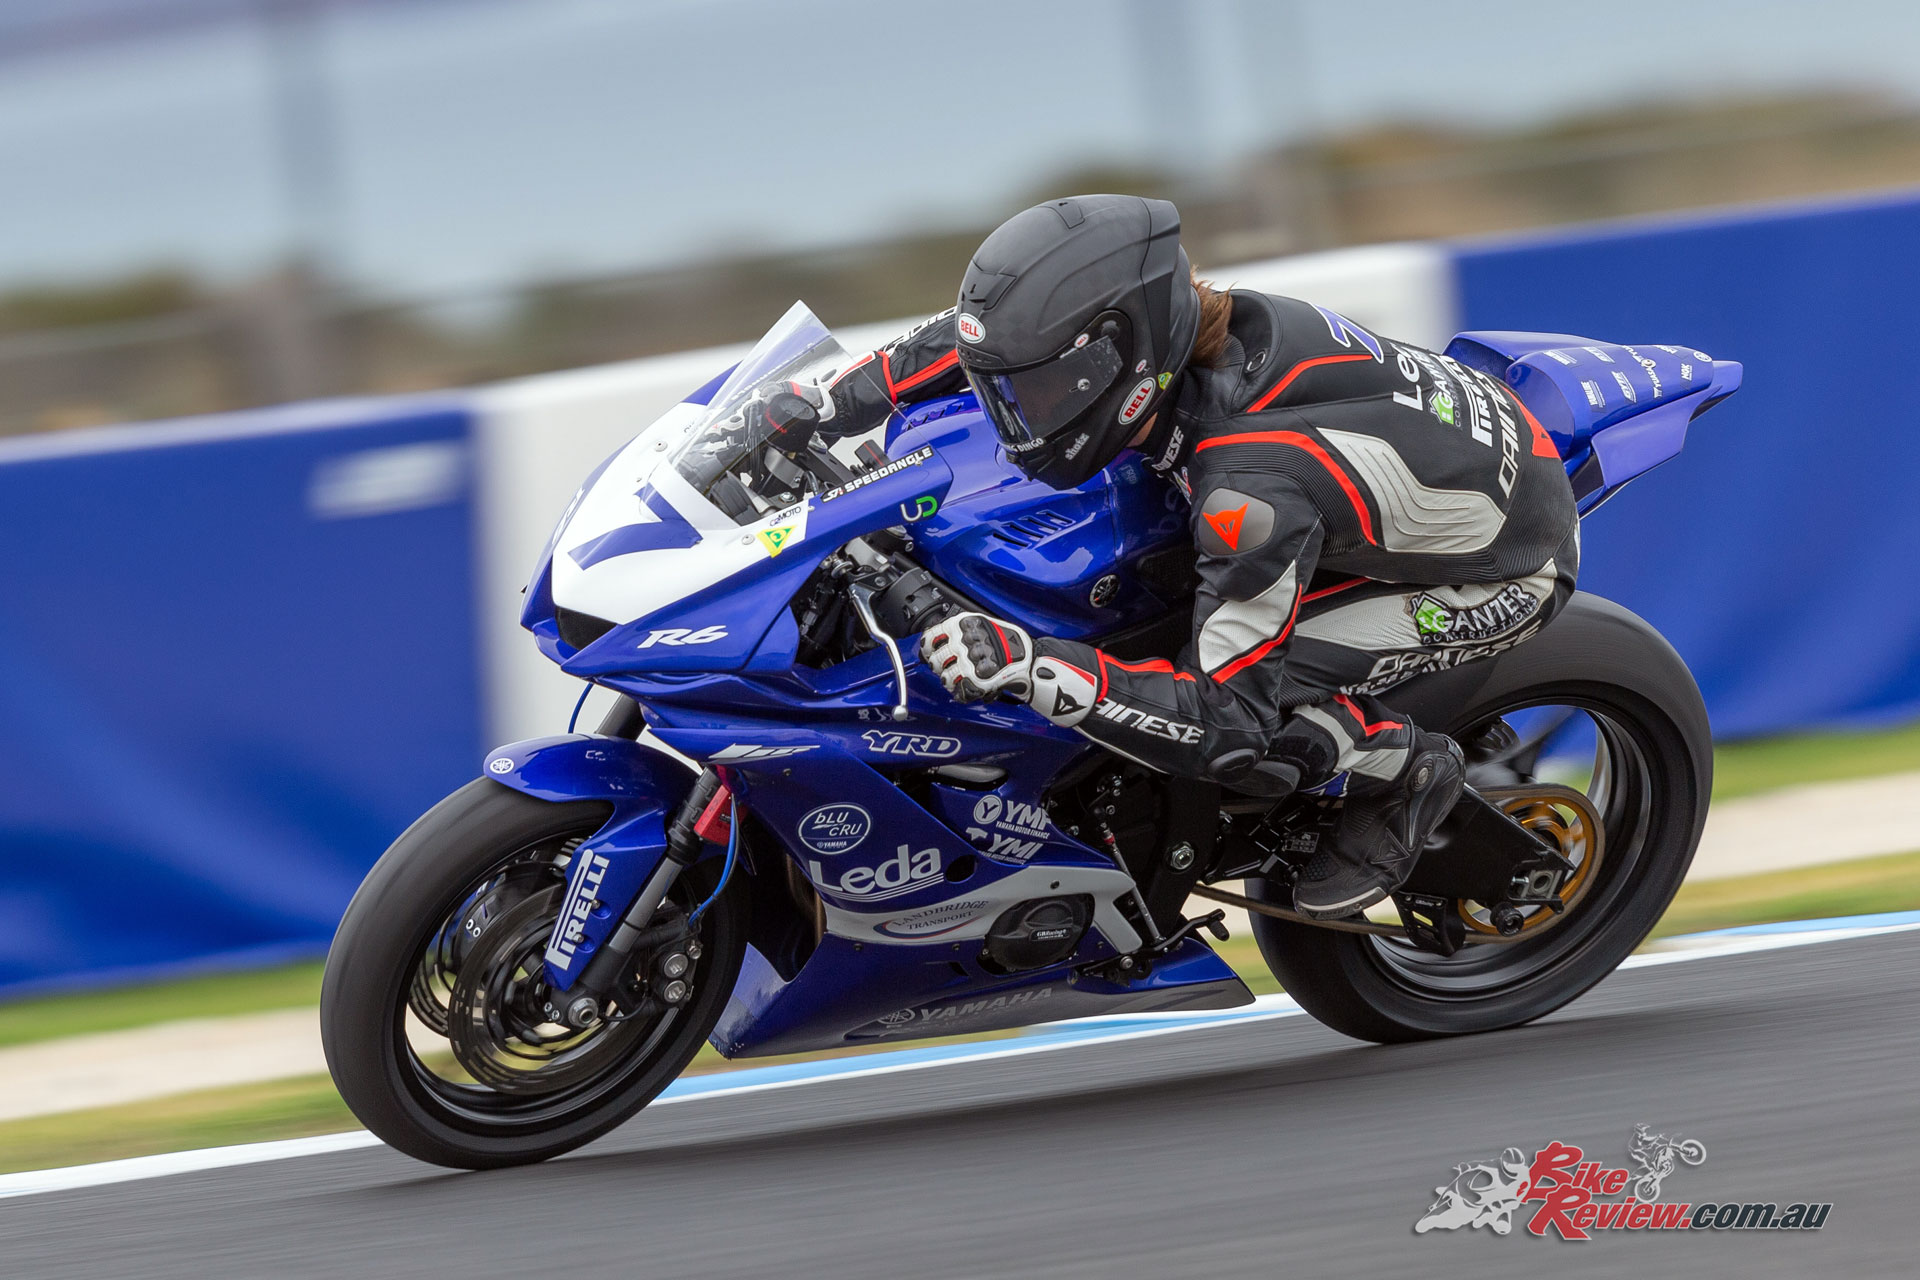 Nic Liminton - 2019 ASBK Round 1 - Phillip Island - Friday - Image by TBG Sport